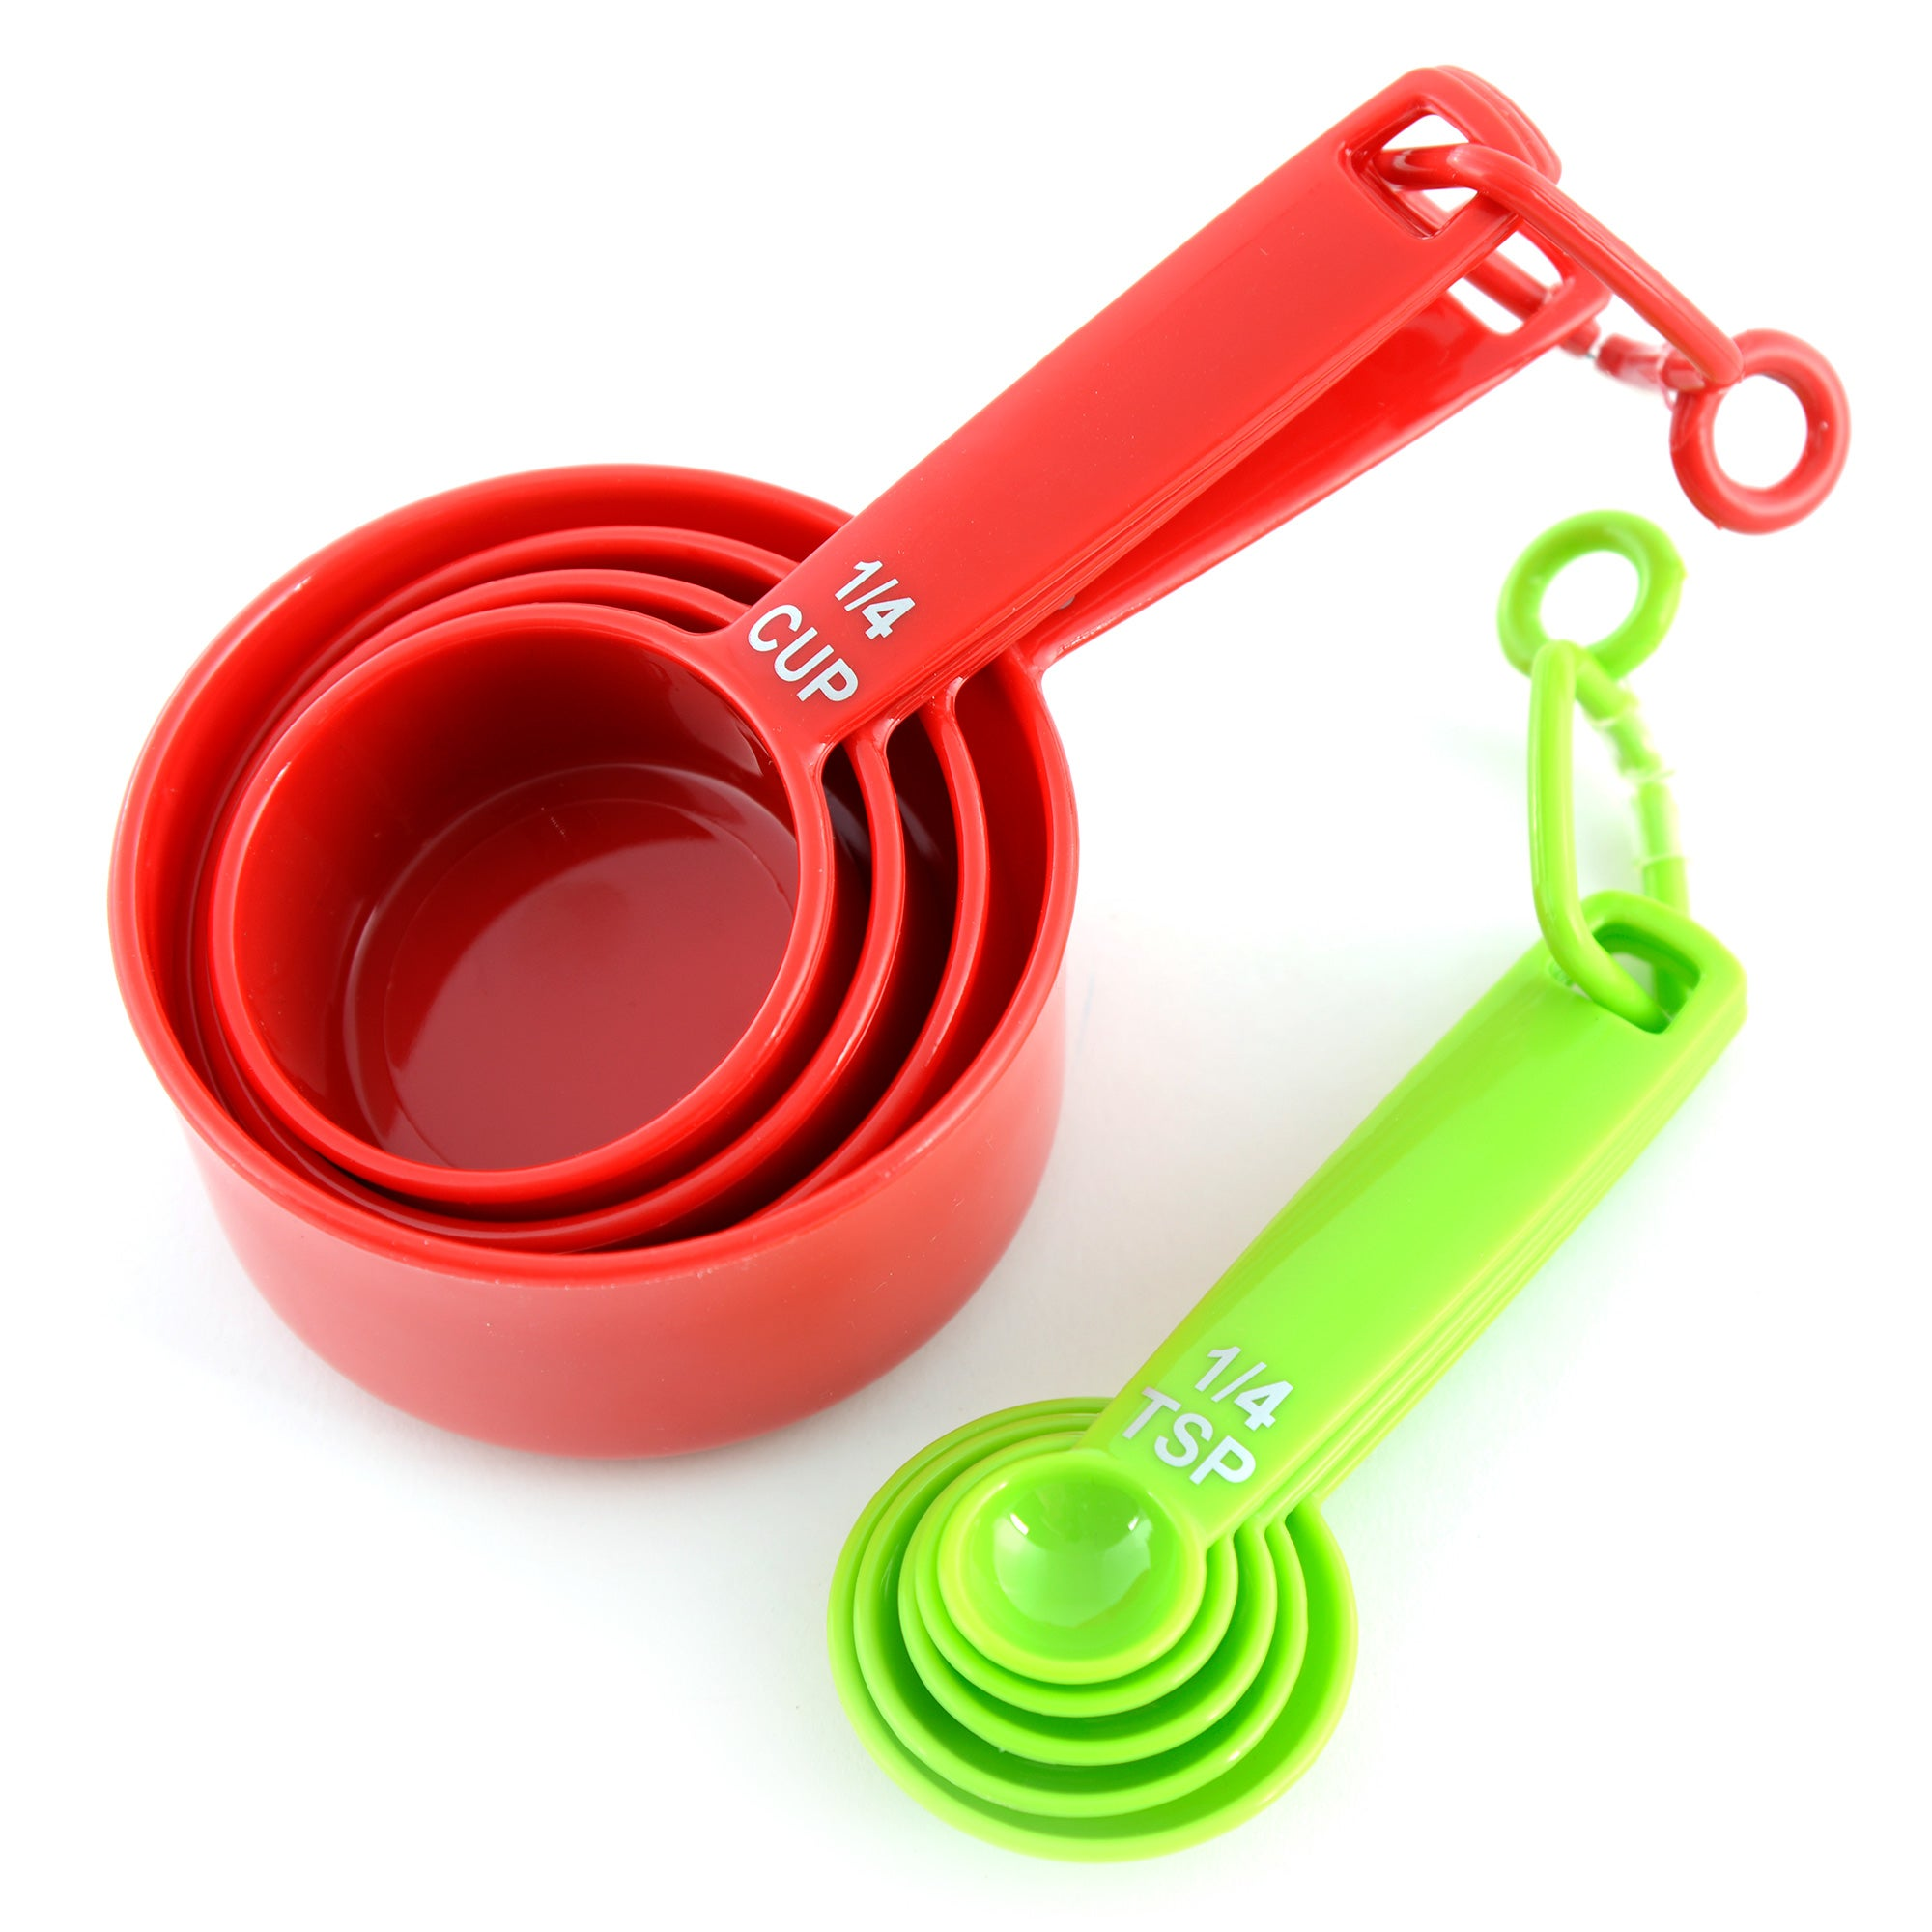 Kids Measuring Cups and Spoons